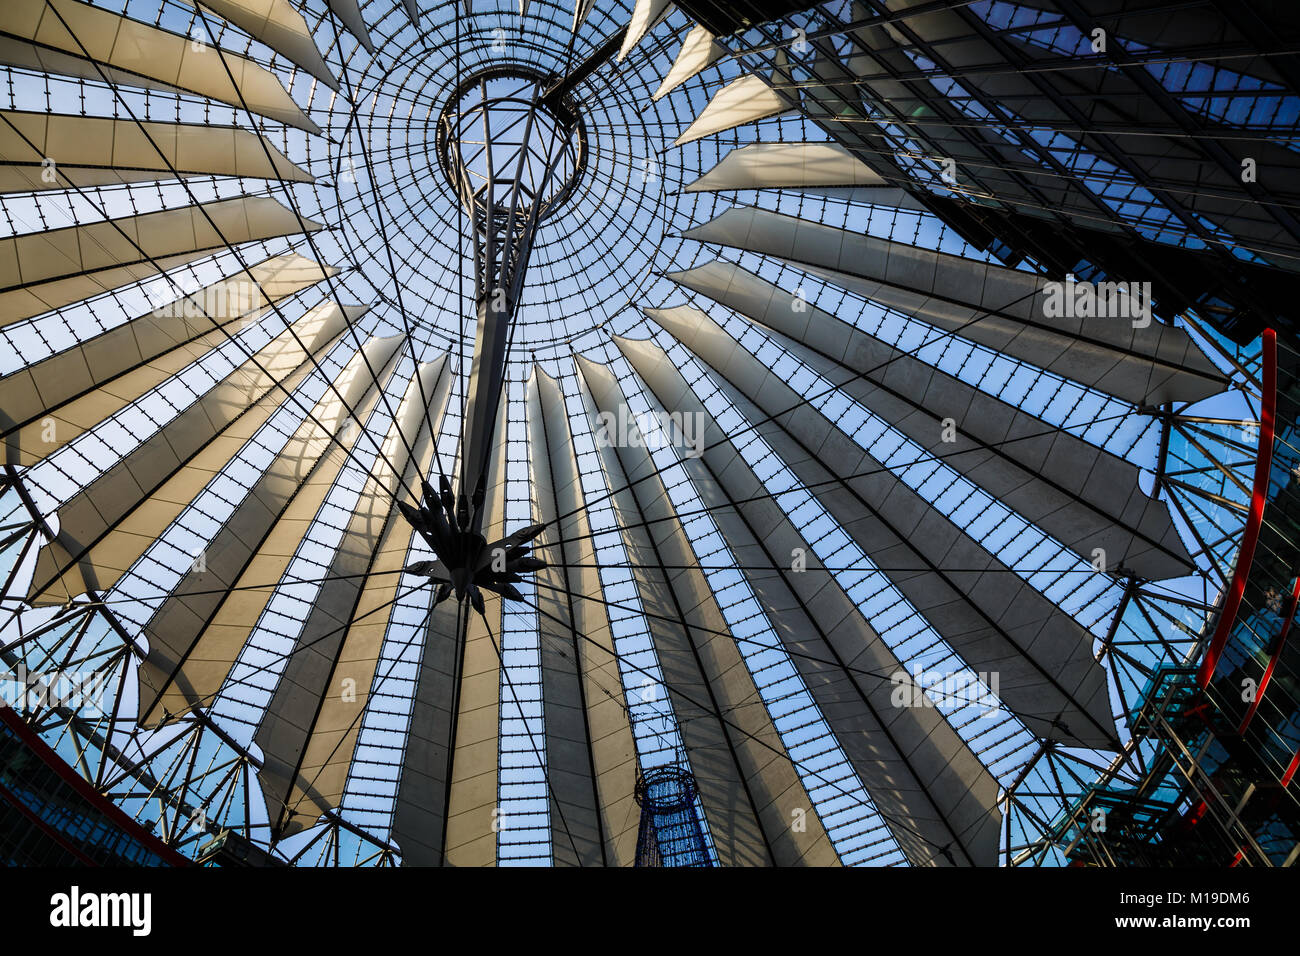 the roof of the Sony Center in Potsdamer Platz, Berlin - Stock Image